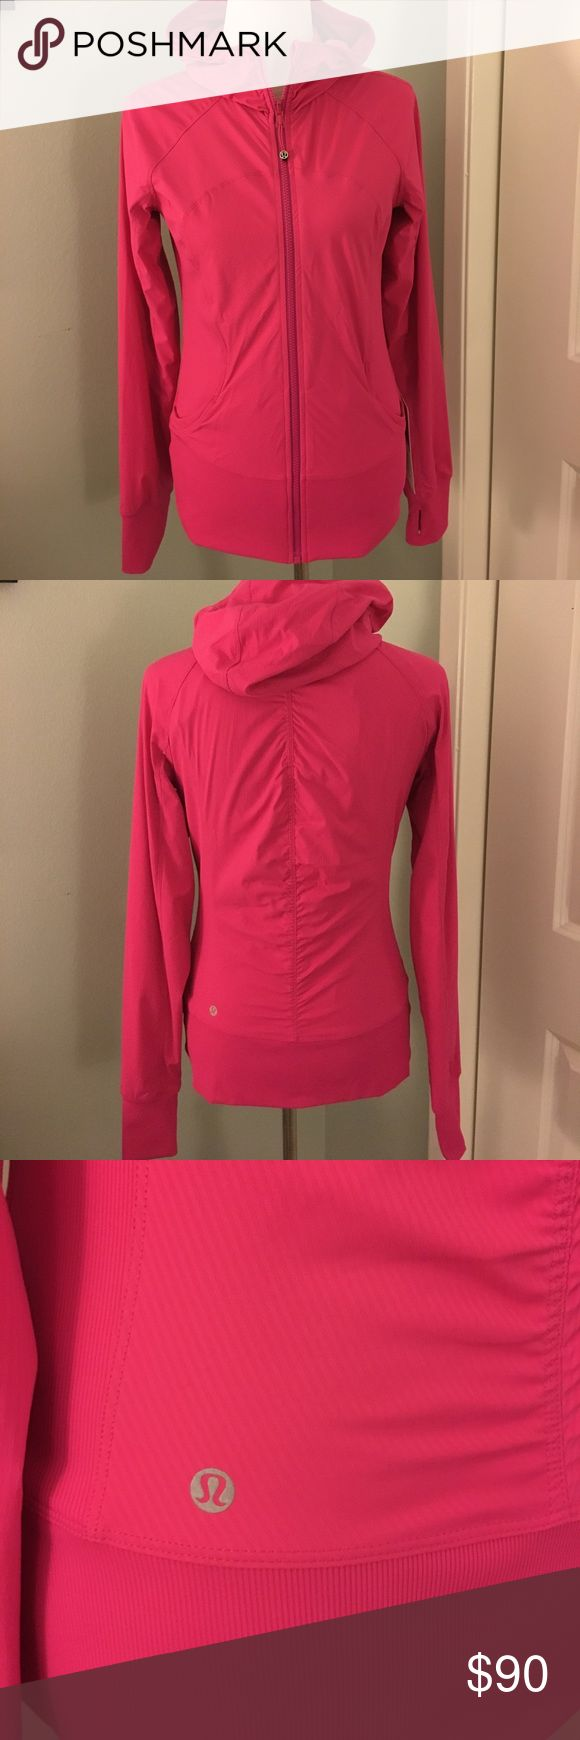 NWT Lululemon In Flux Reversible Jacket Brand new gorgeous Lululemon In Flux reversible pink jacket. Never worn, from smoke free, pet free home. Received as a gift and just never wore it. Should be used, not sitting in my closet! Size 10. Modeled on a size 6 mannequin, runs small in my opinion. Please feel free to as any questions. No trades and no PayPal. lululemon athletica Jackets & Coats